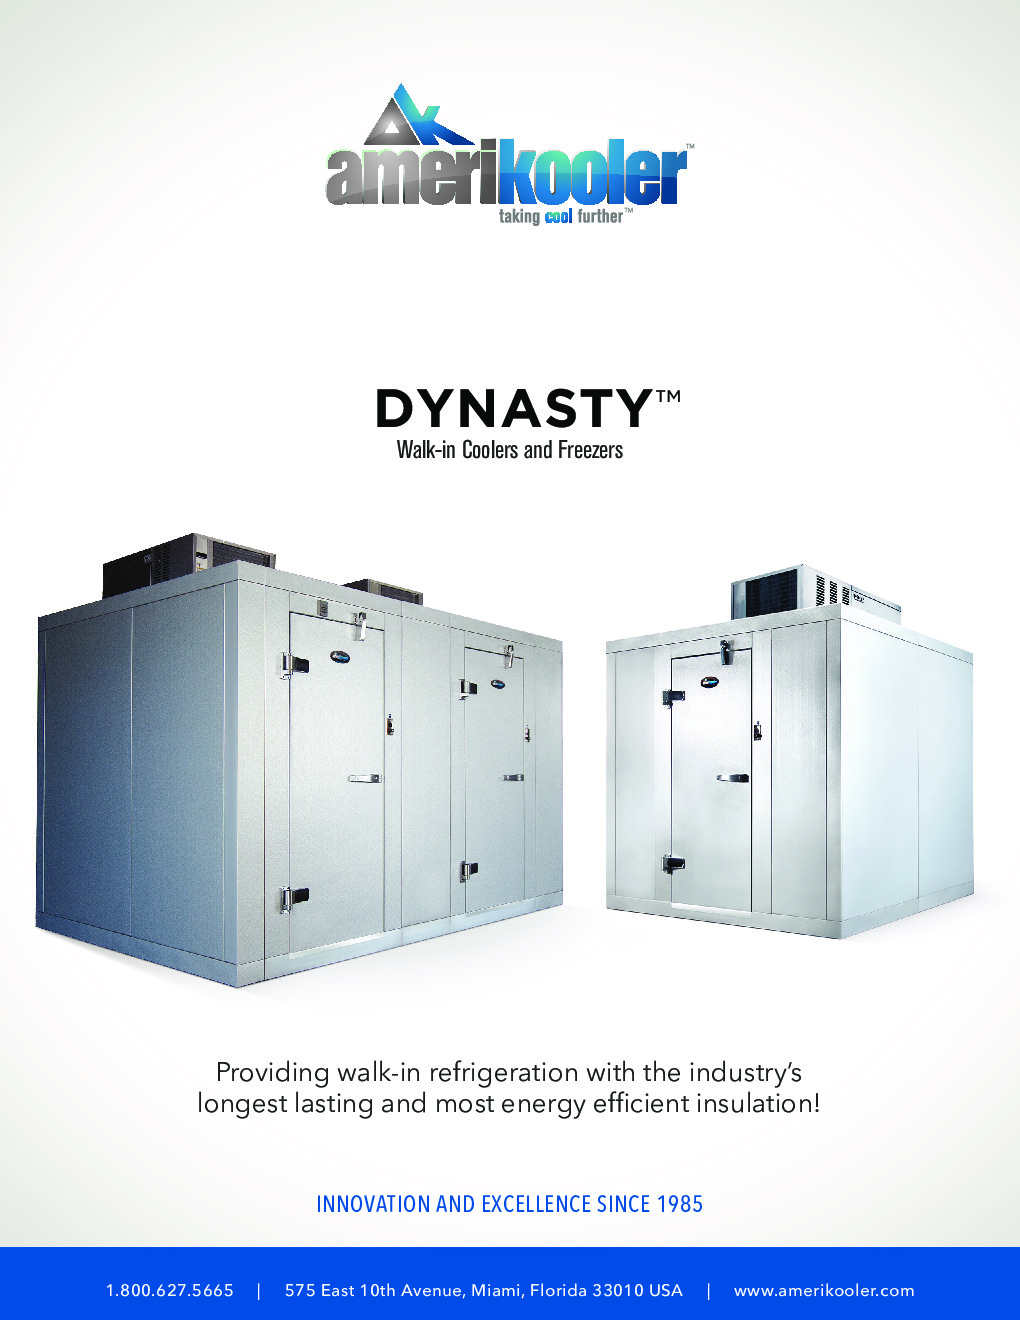 AmeriKooler DW071077F-4/6-SC 7' X 10' Walk-In Cooler, 6' L Cooler with Floor and 4' L Freezer, Self Contained